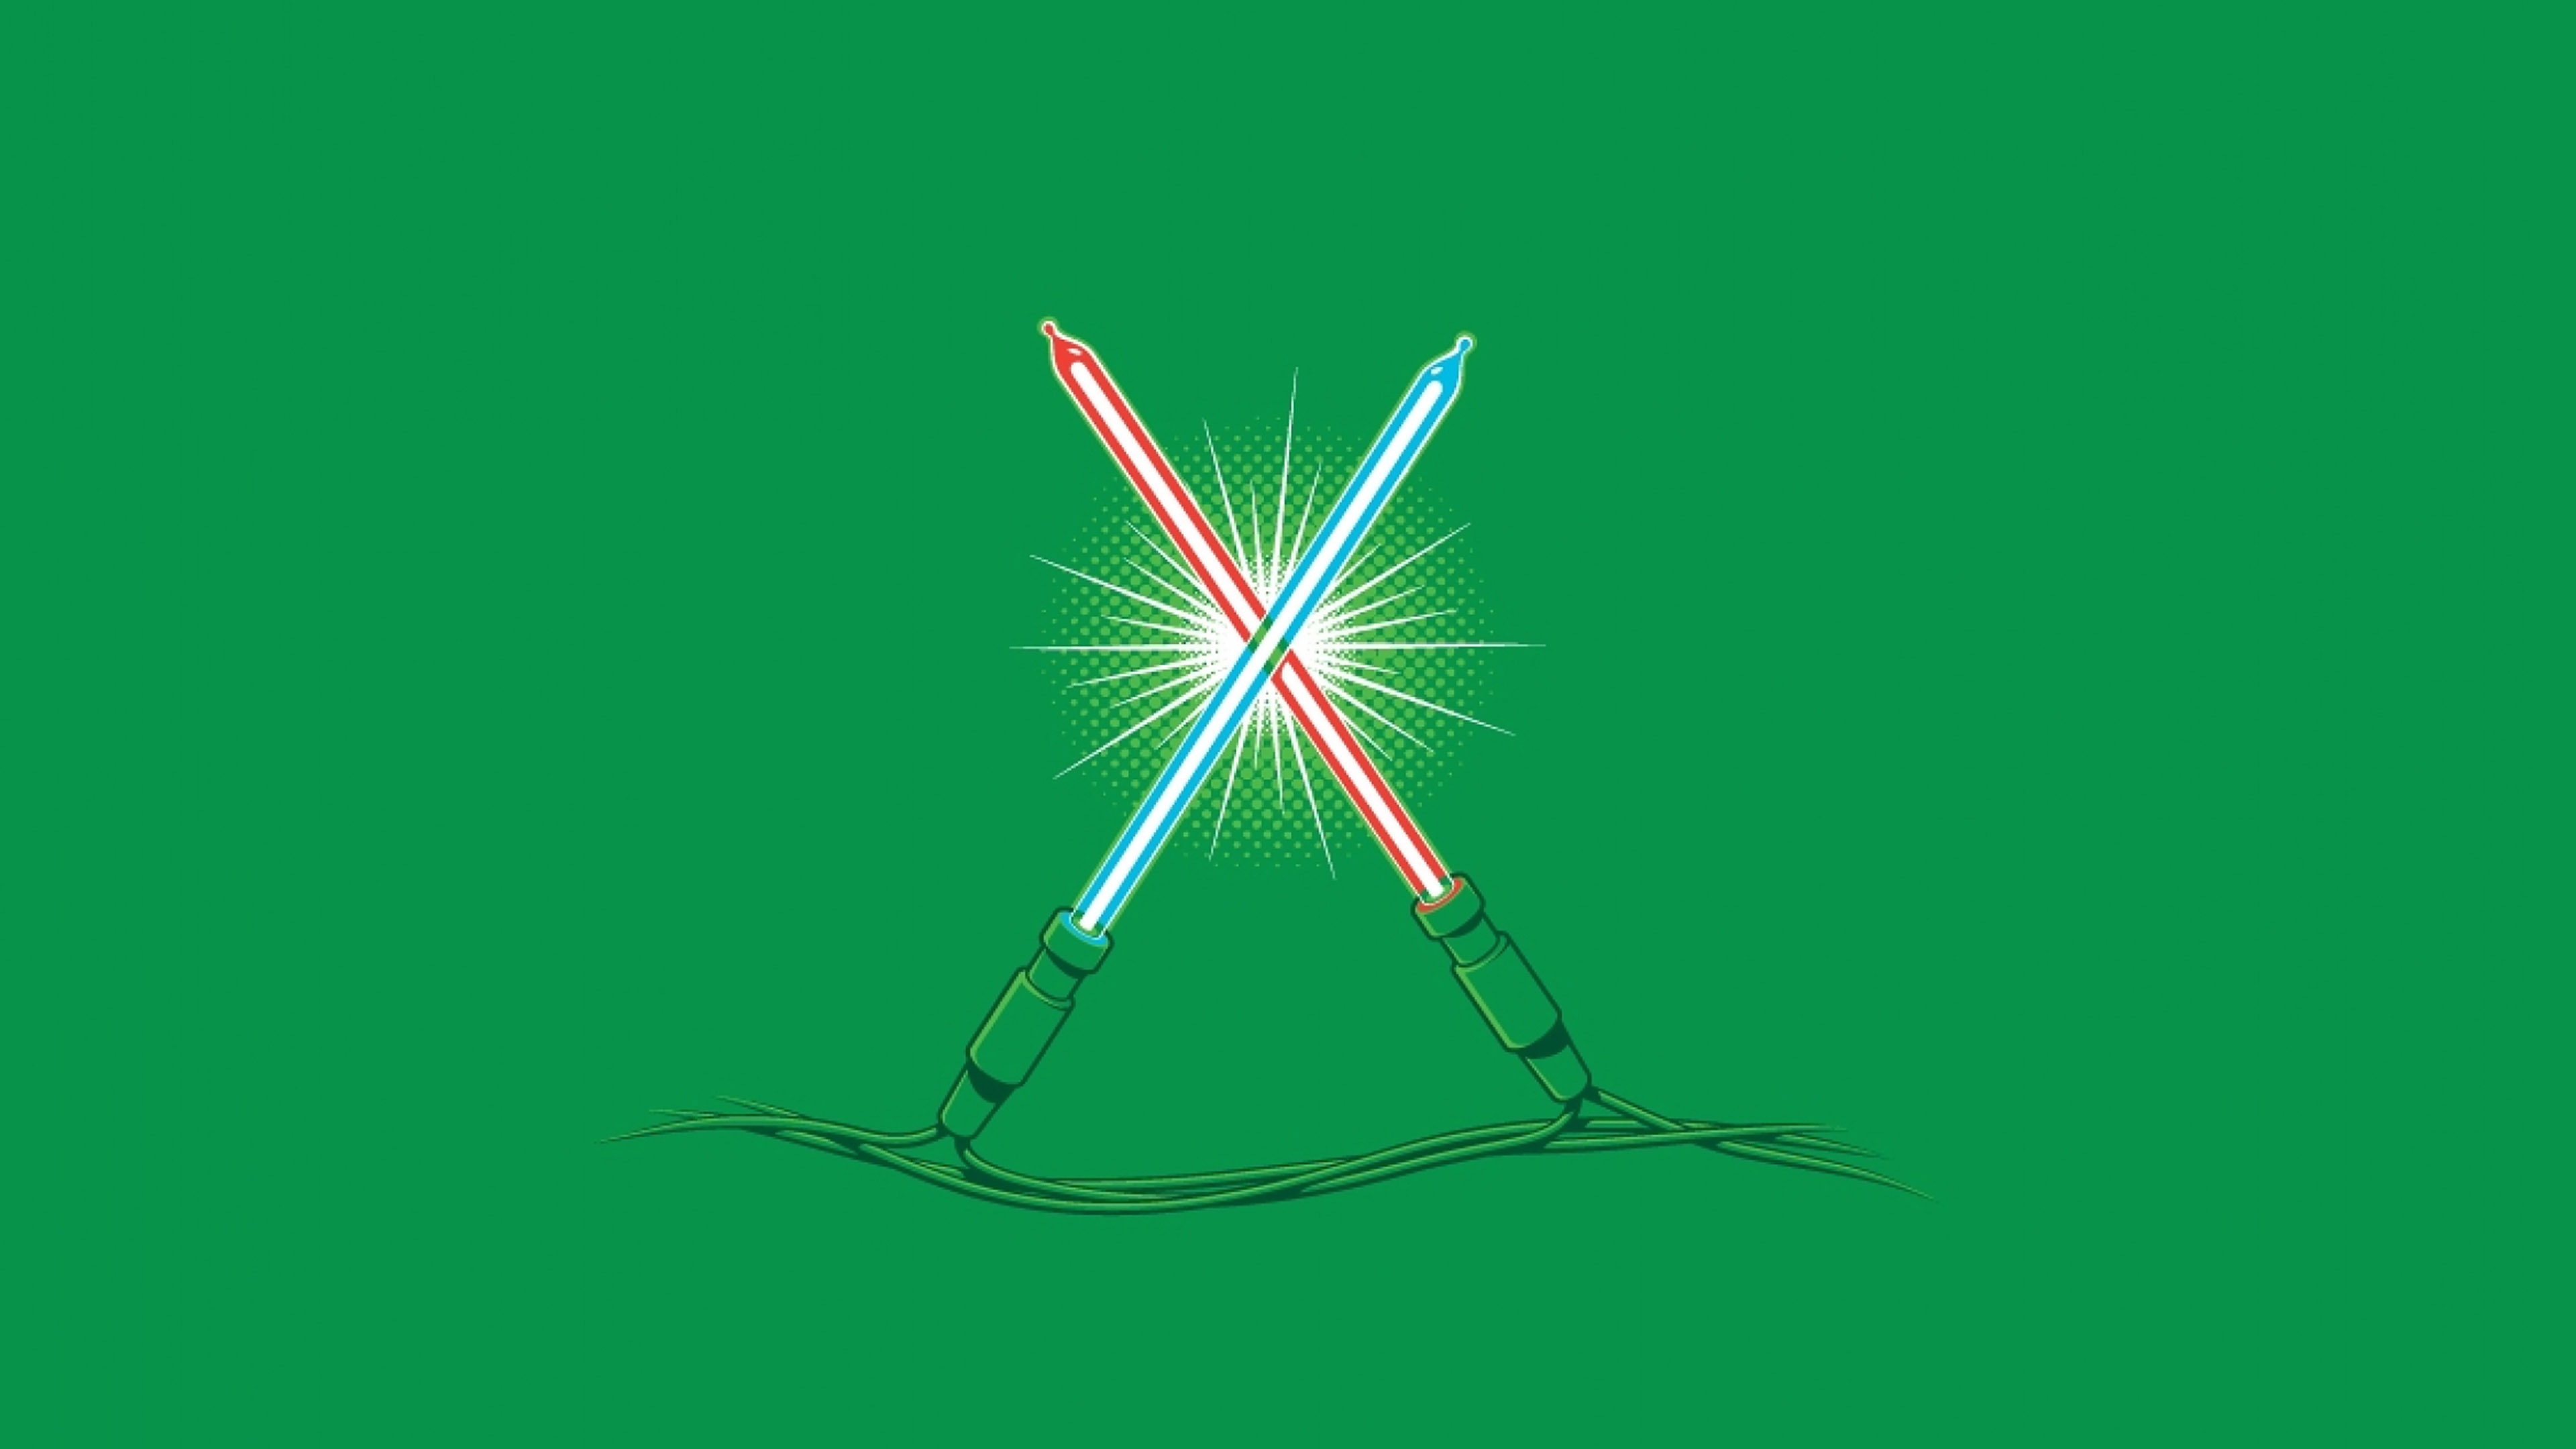 Ag26 Christmas Lights Illust Minimal Starwars Art Wallpaper